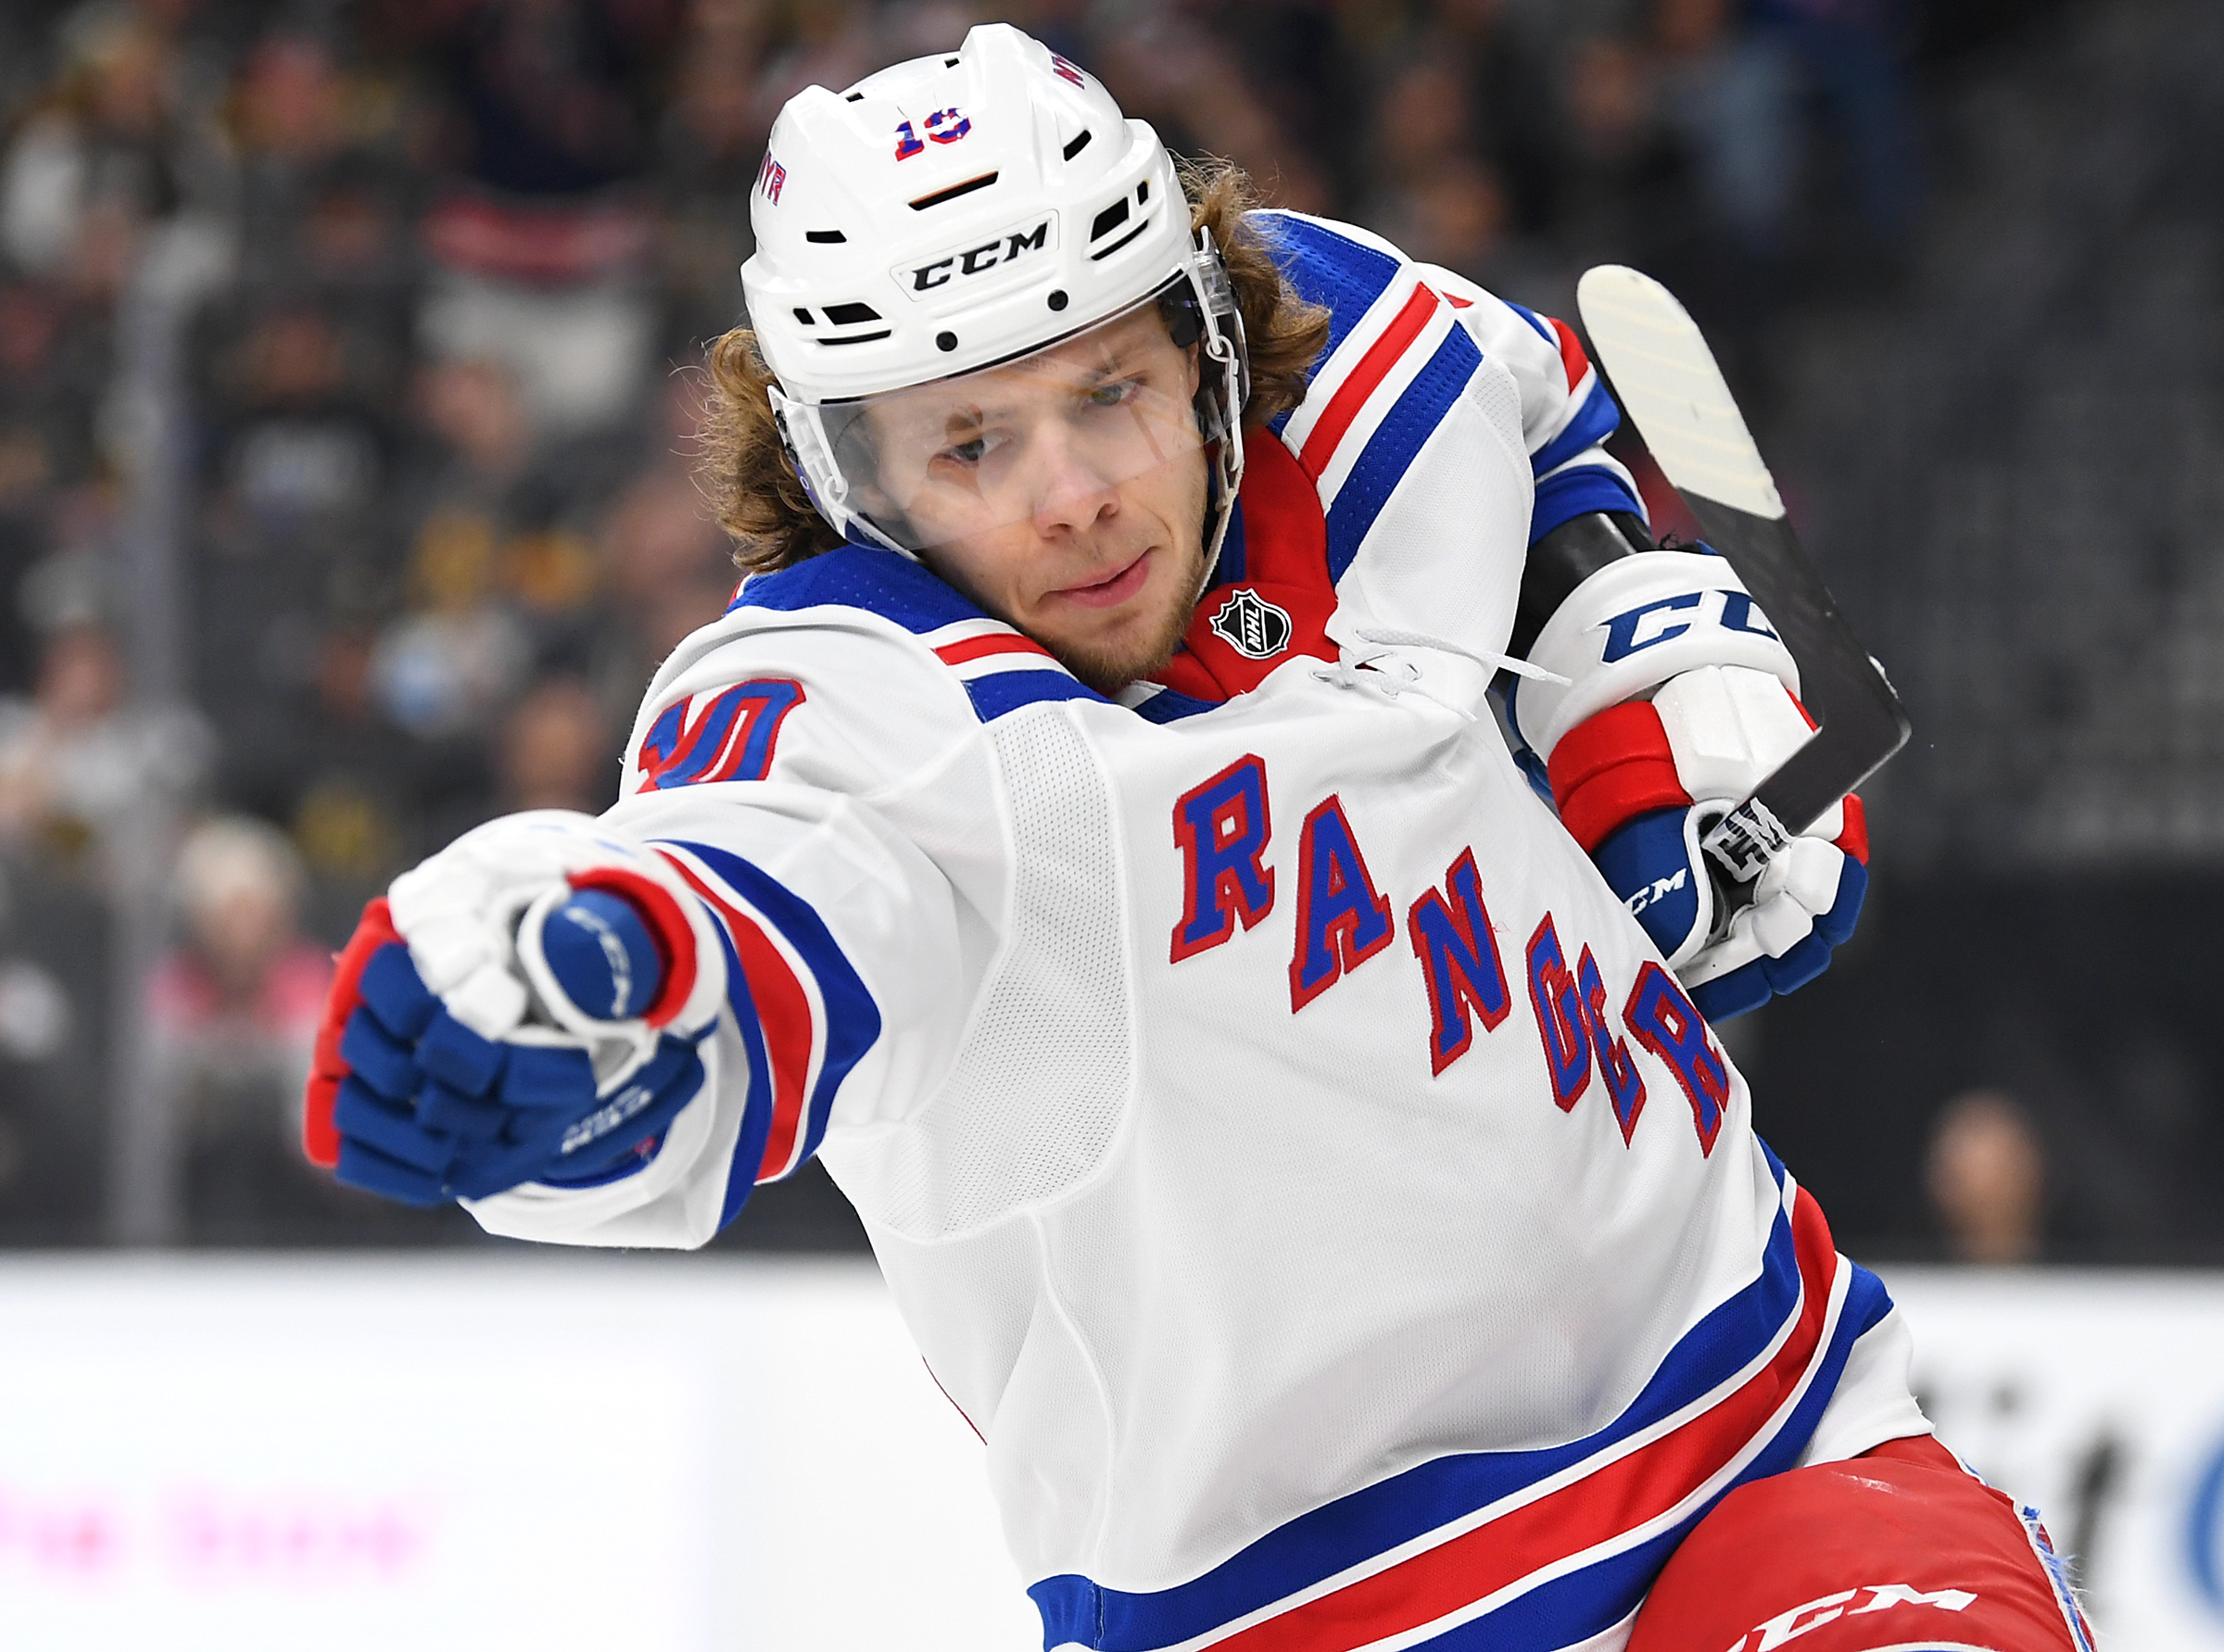 Blackhawks, Rangers deserve to be in playoffs if NHL goes to 24 teams